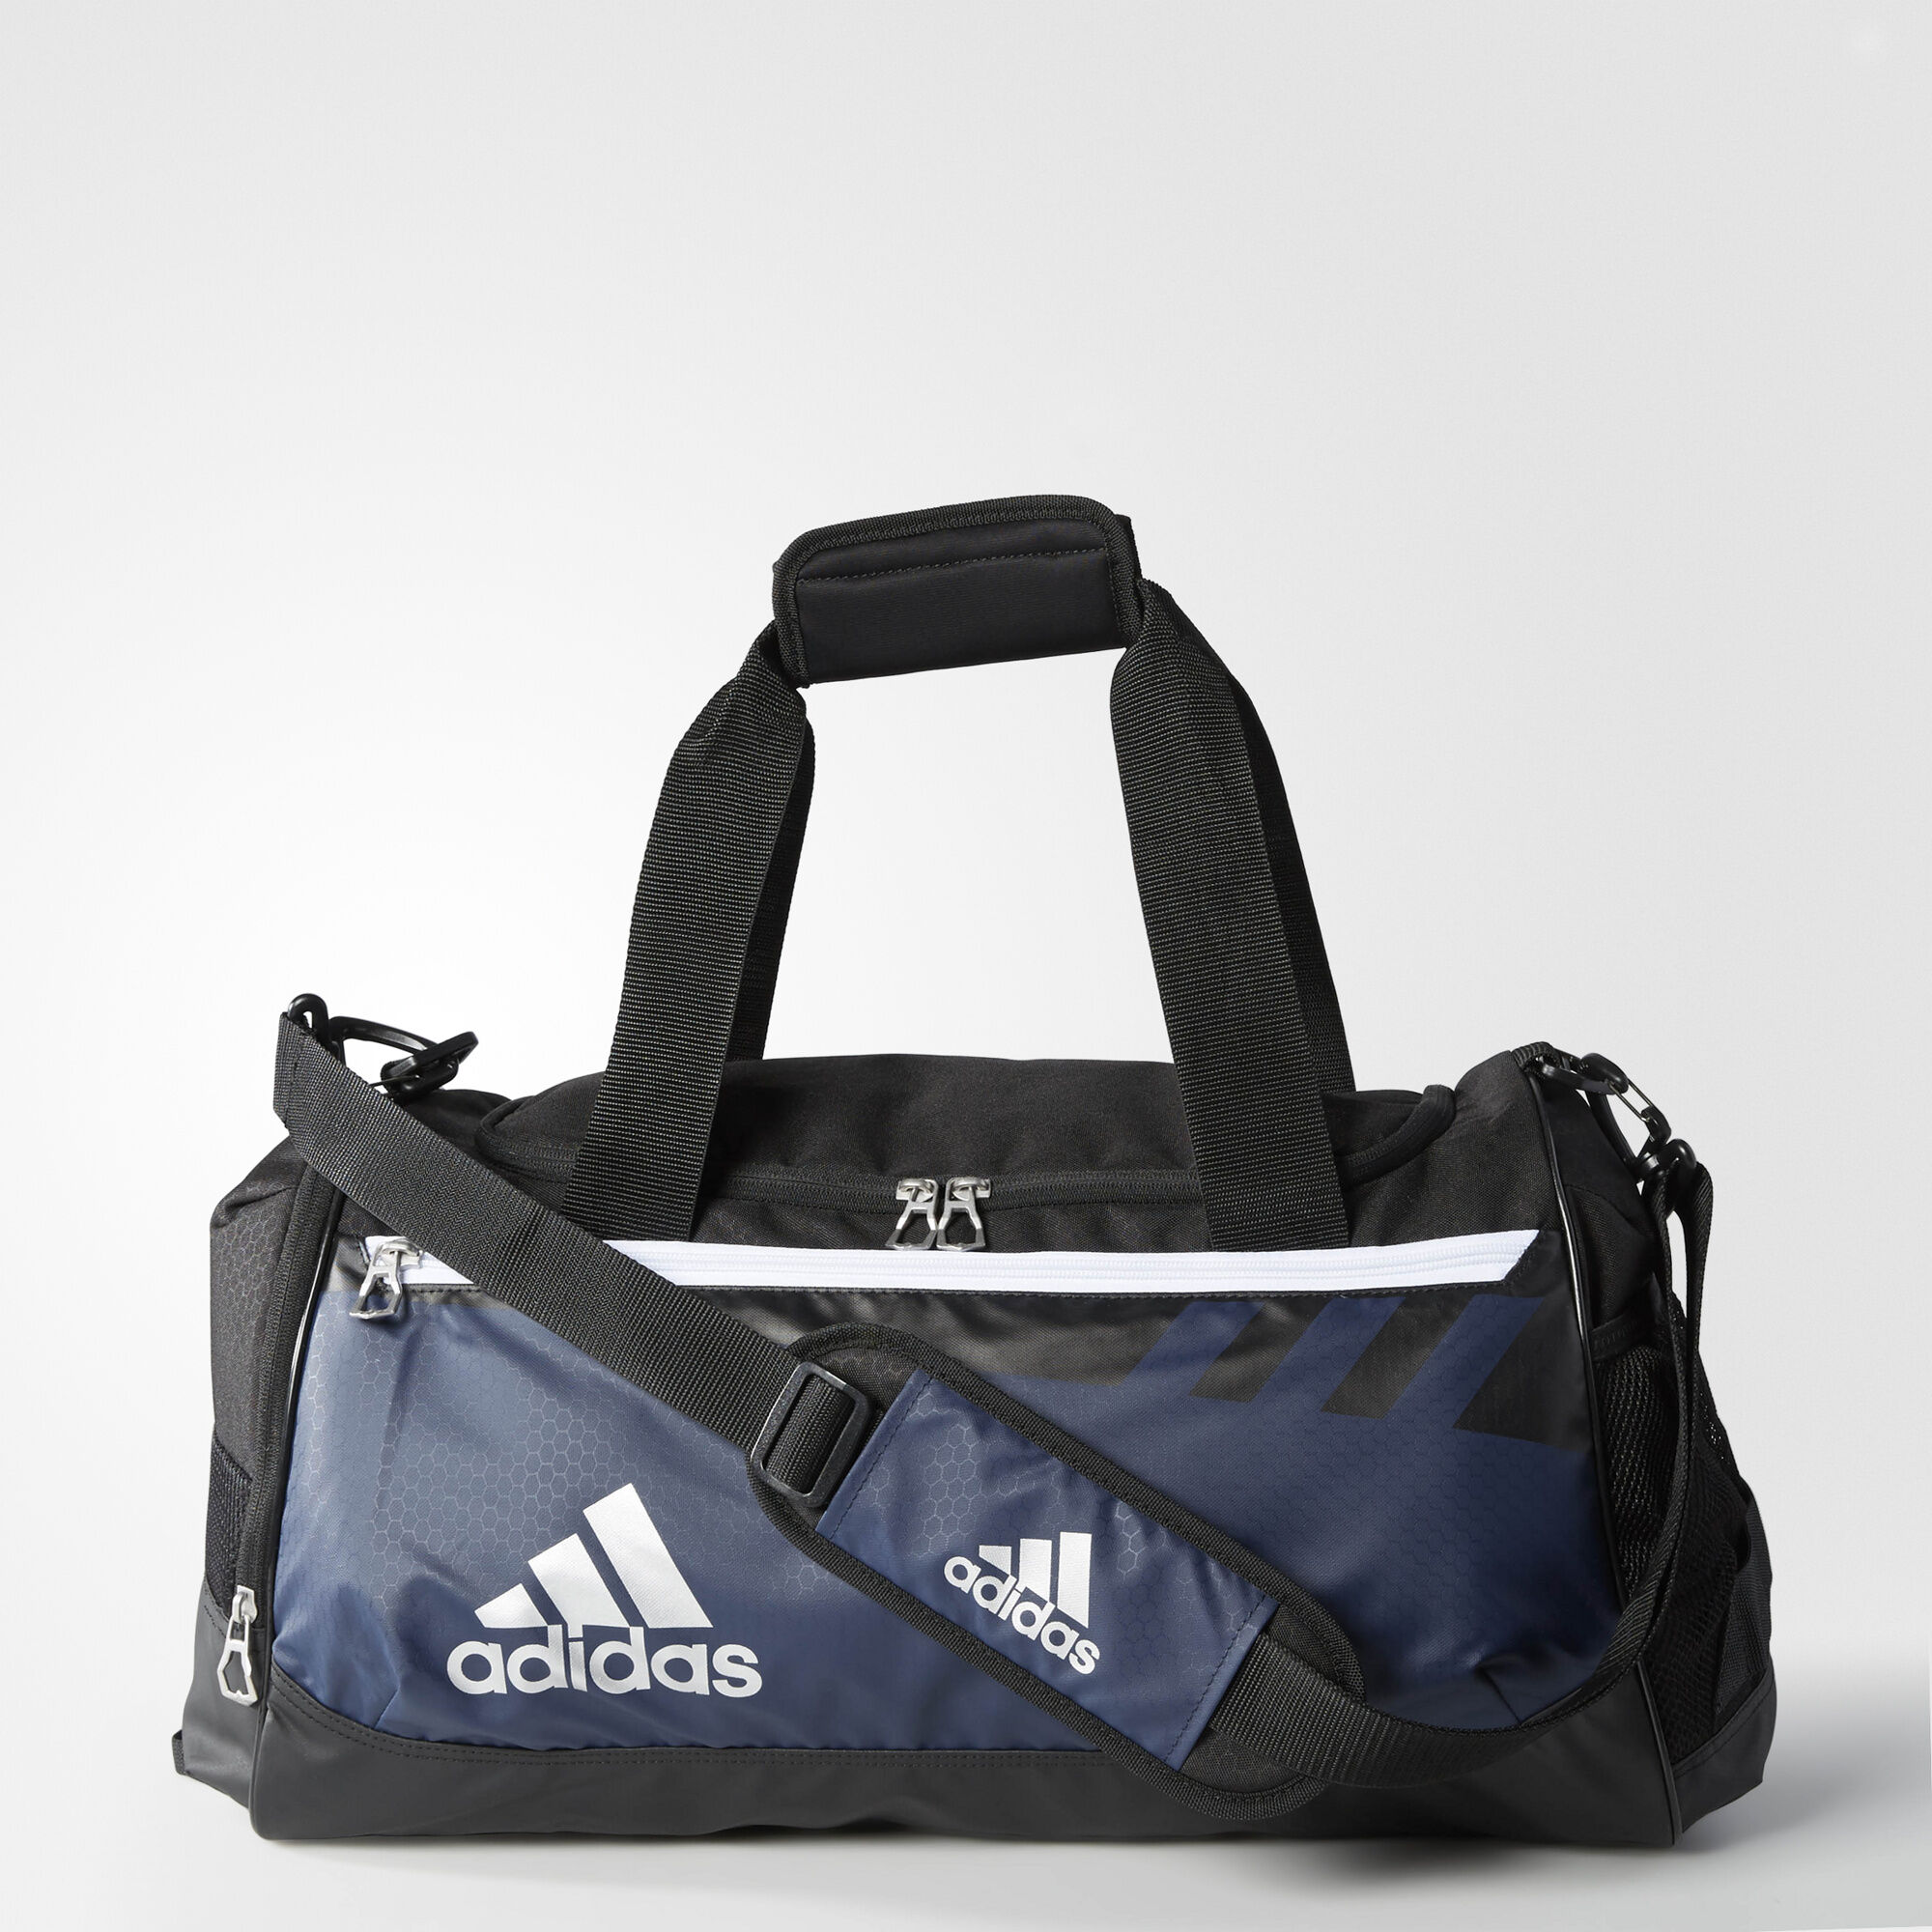 a335c5bbcf adidas duffle bag cheap > OFF41% The Largest Catalog Discounts